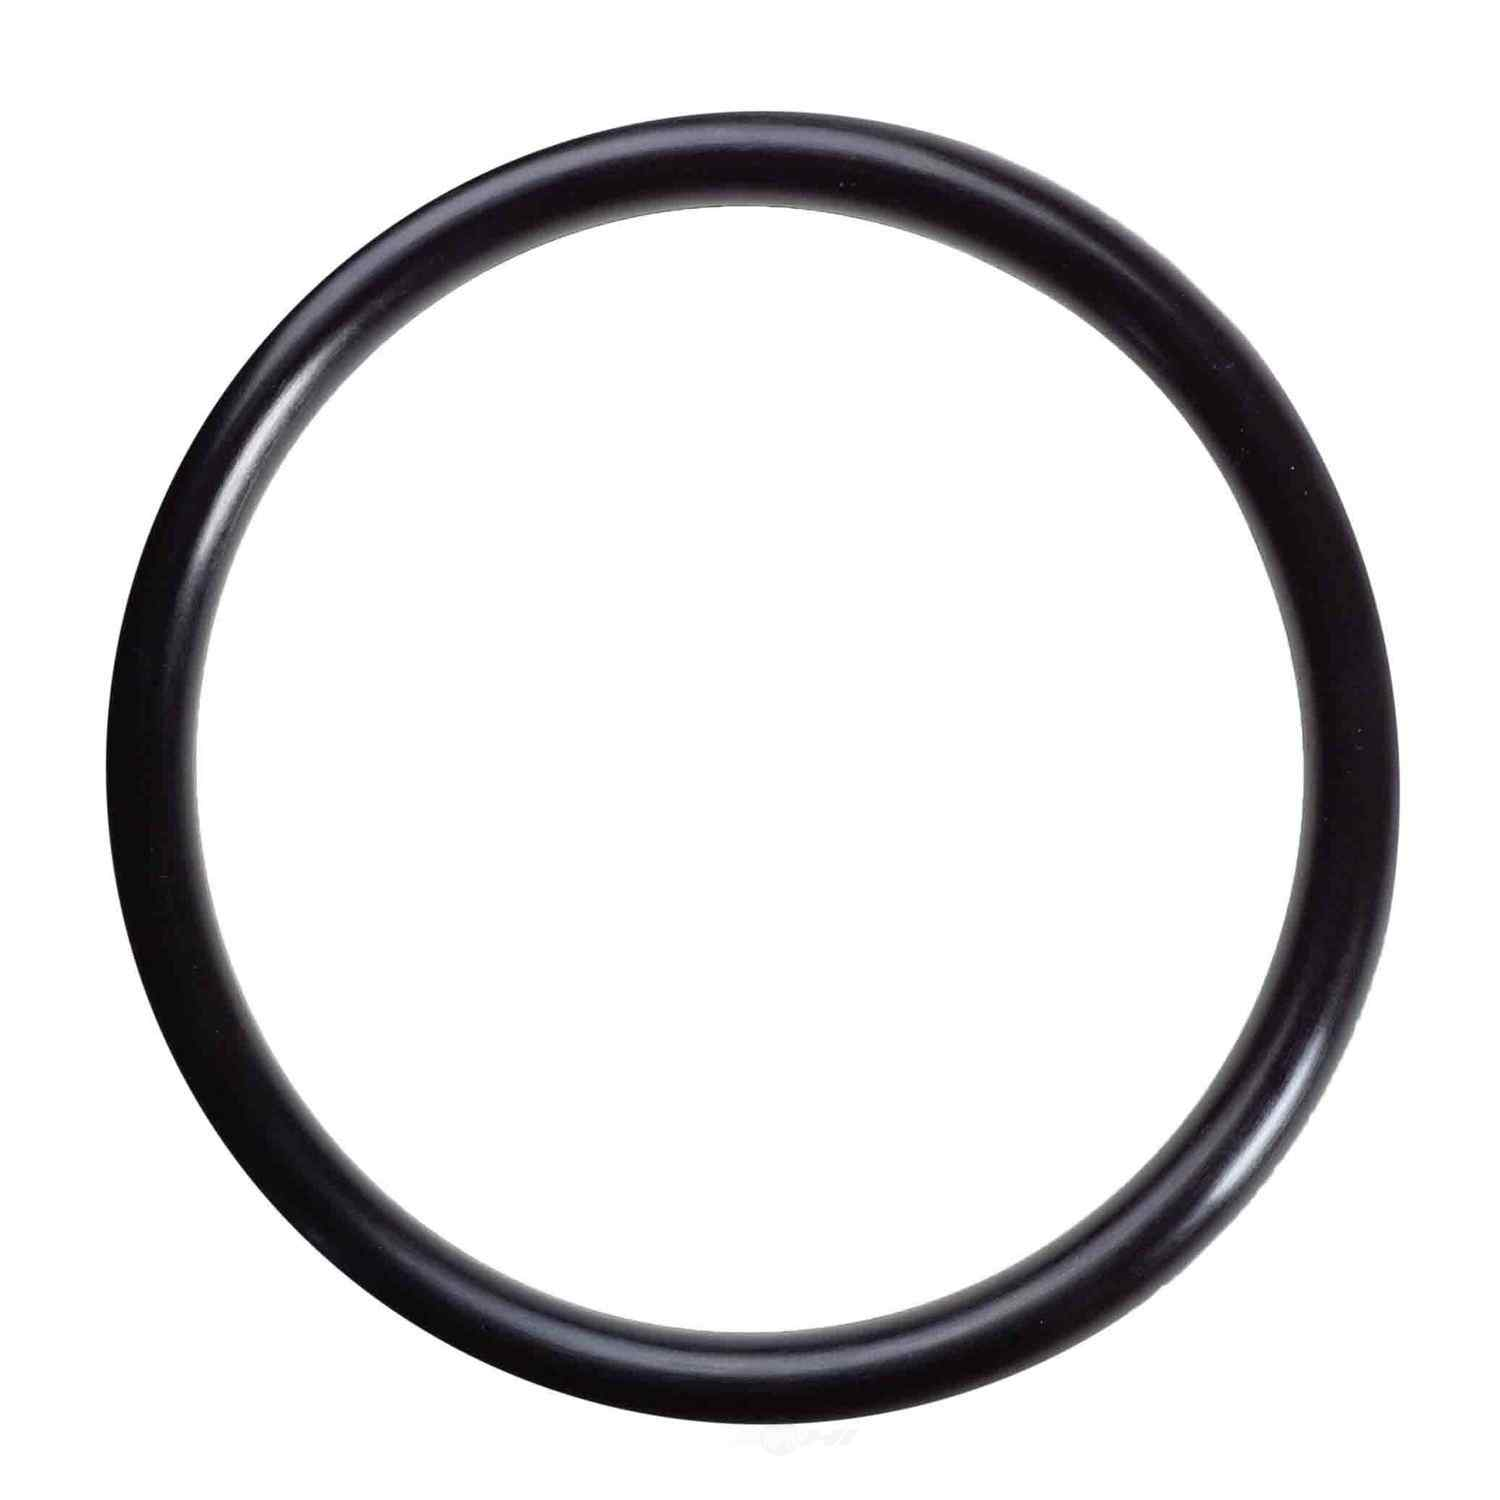 FELPRO - Engine Oil Filter Adapter Gasket - FEL 415